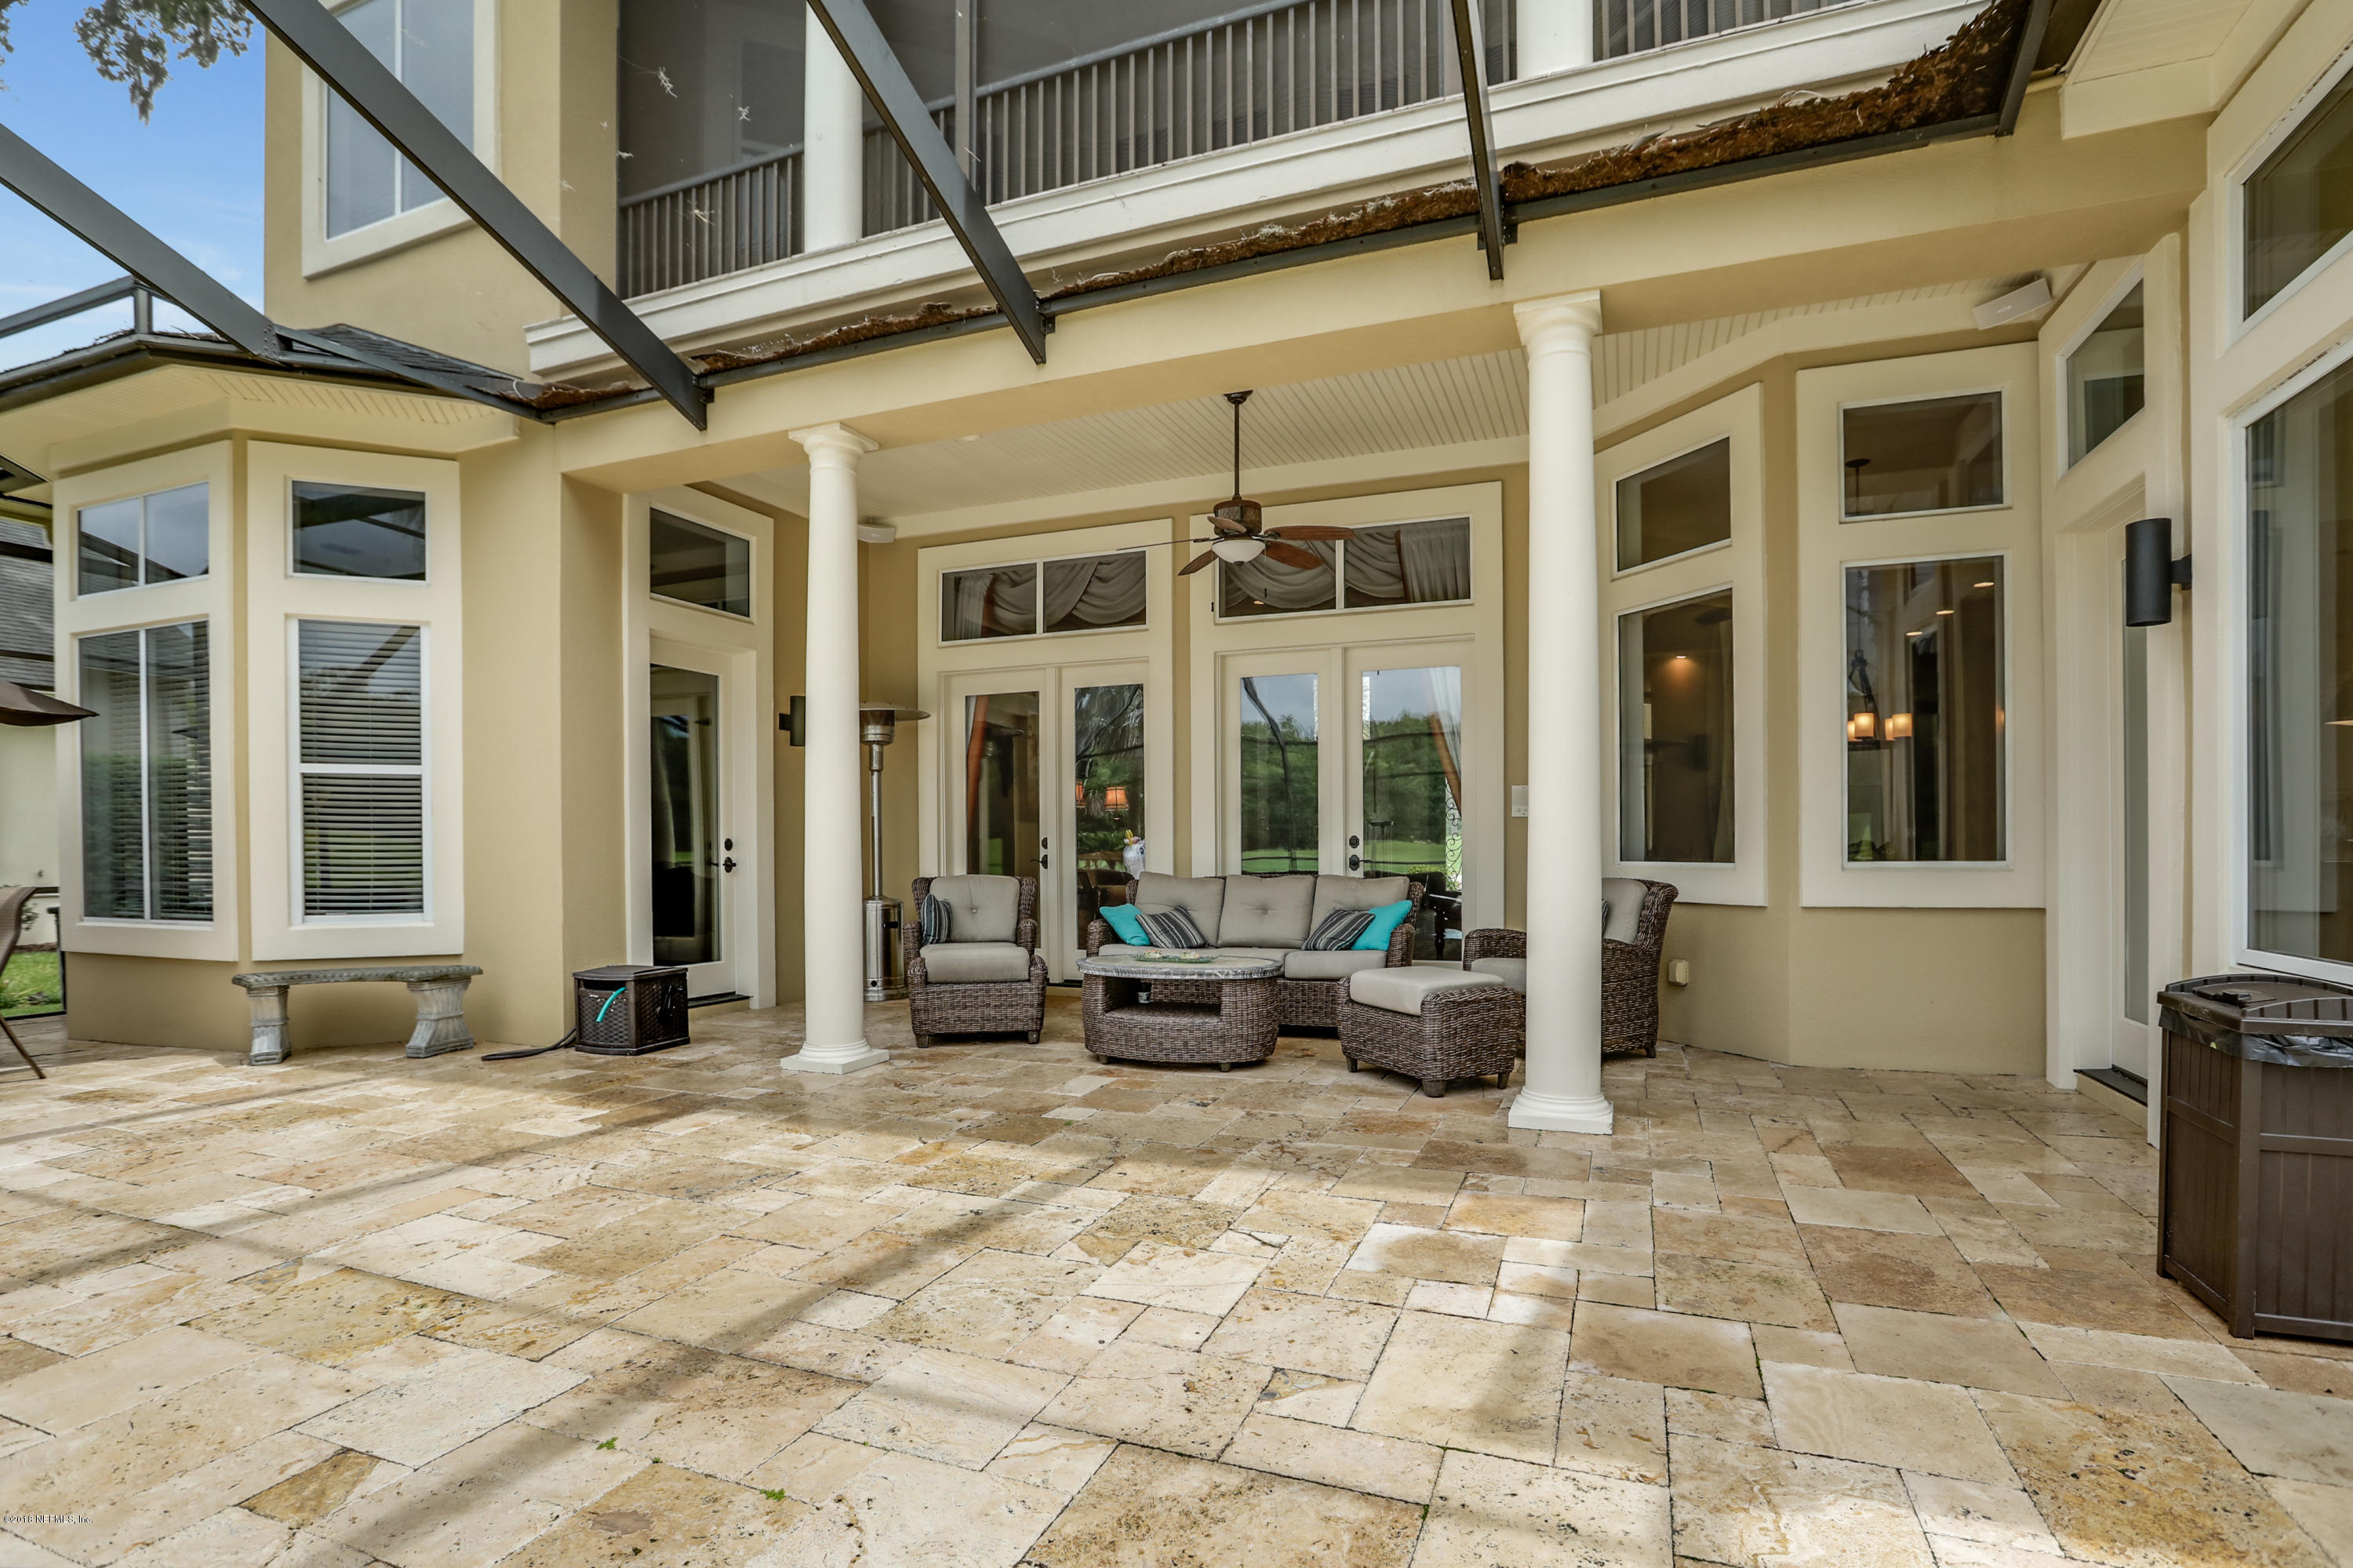 8301 SEVEN MILE, PONTE VEDRA BEACH, FLORIDA 32082, 4 Bedrooms Bedrooms, ,4 BathroomsBathrooms,Residential - single family,For sale,SEVEN MILE,937727